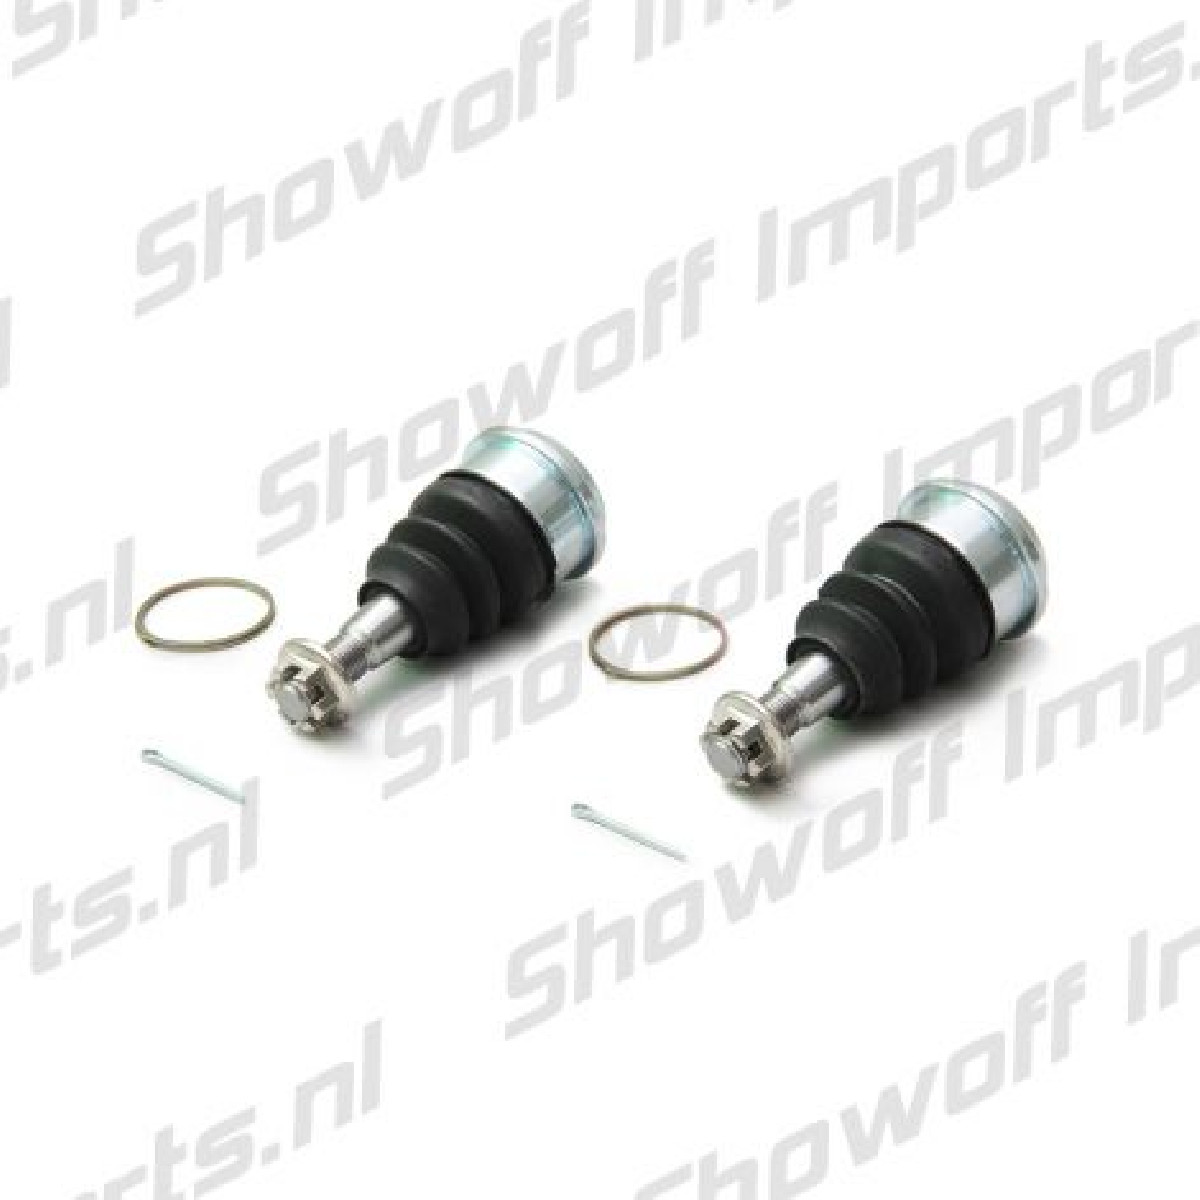 Subaru BRZ Front Roll Center Adjusters [MR]